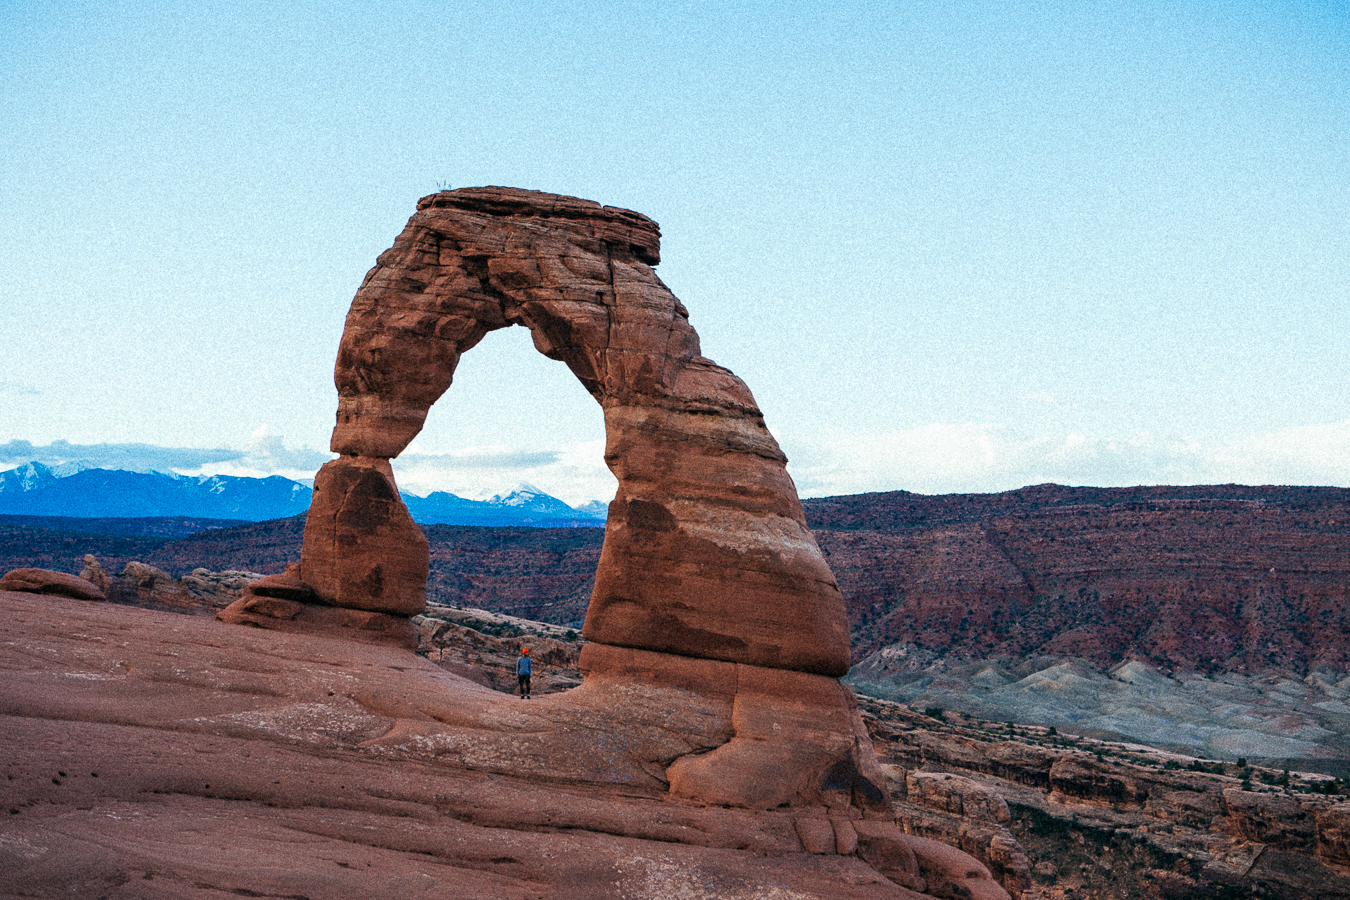 Minutes before sunrise right up under the Delicate Arch. I hiked up here in the dark to avoid the hundreds of tourists that would arrive later in theday.